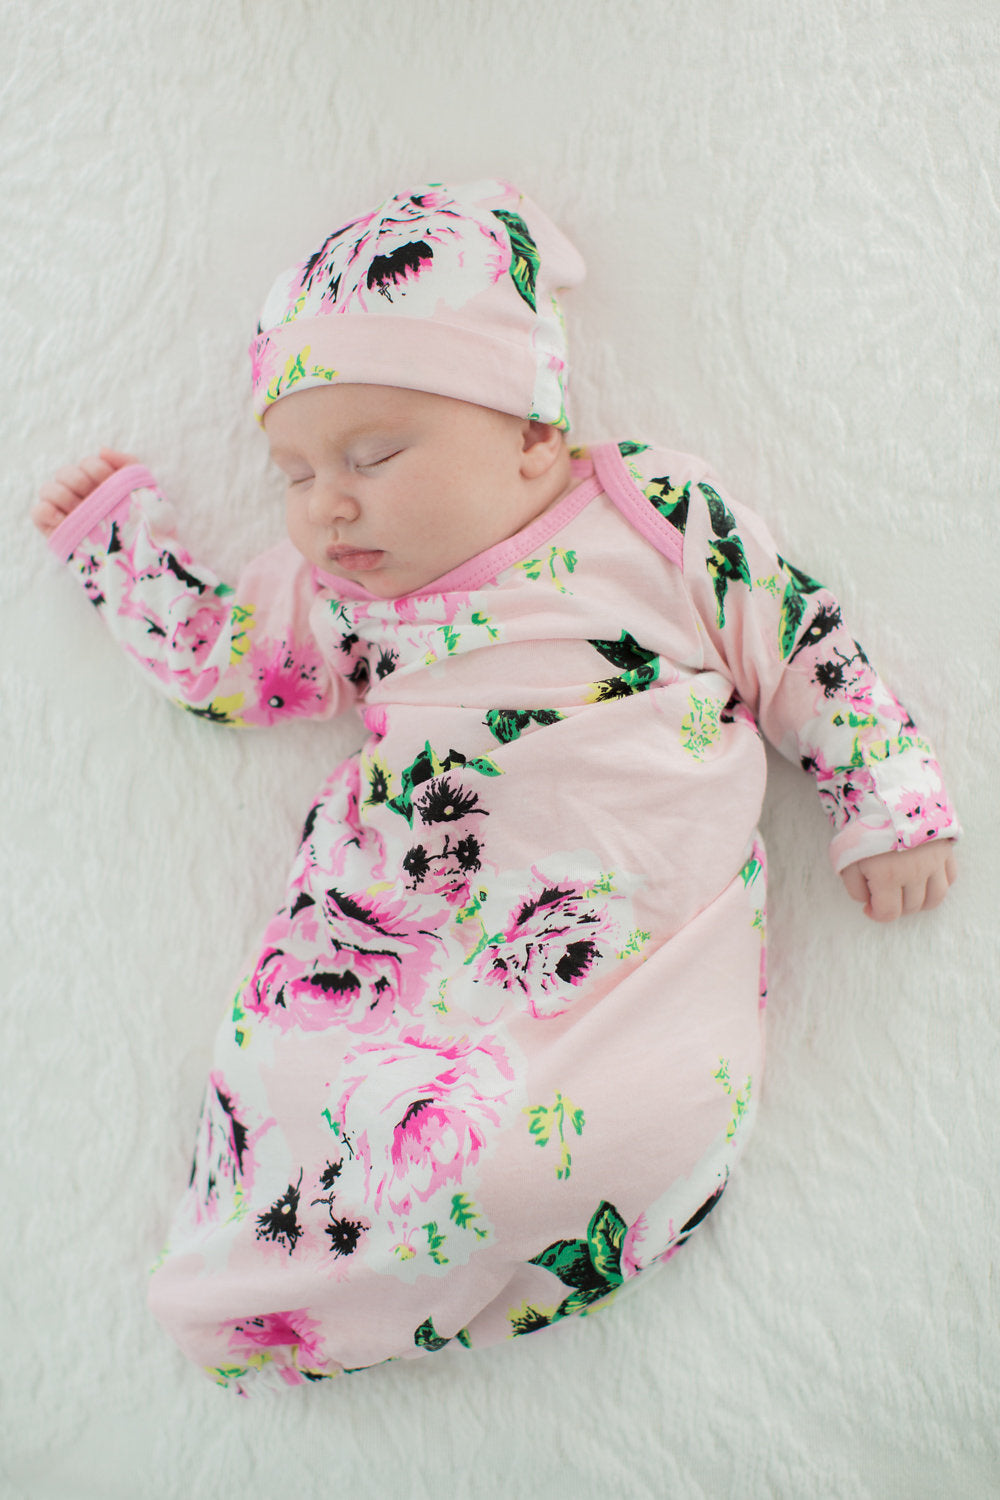 69bce4d4067 Amelia Floral Baby Coming Home Outfit   Matching Newborn Hat Set 2pc ...